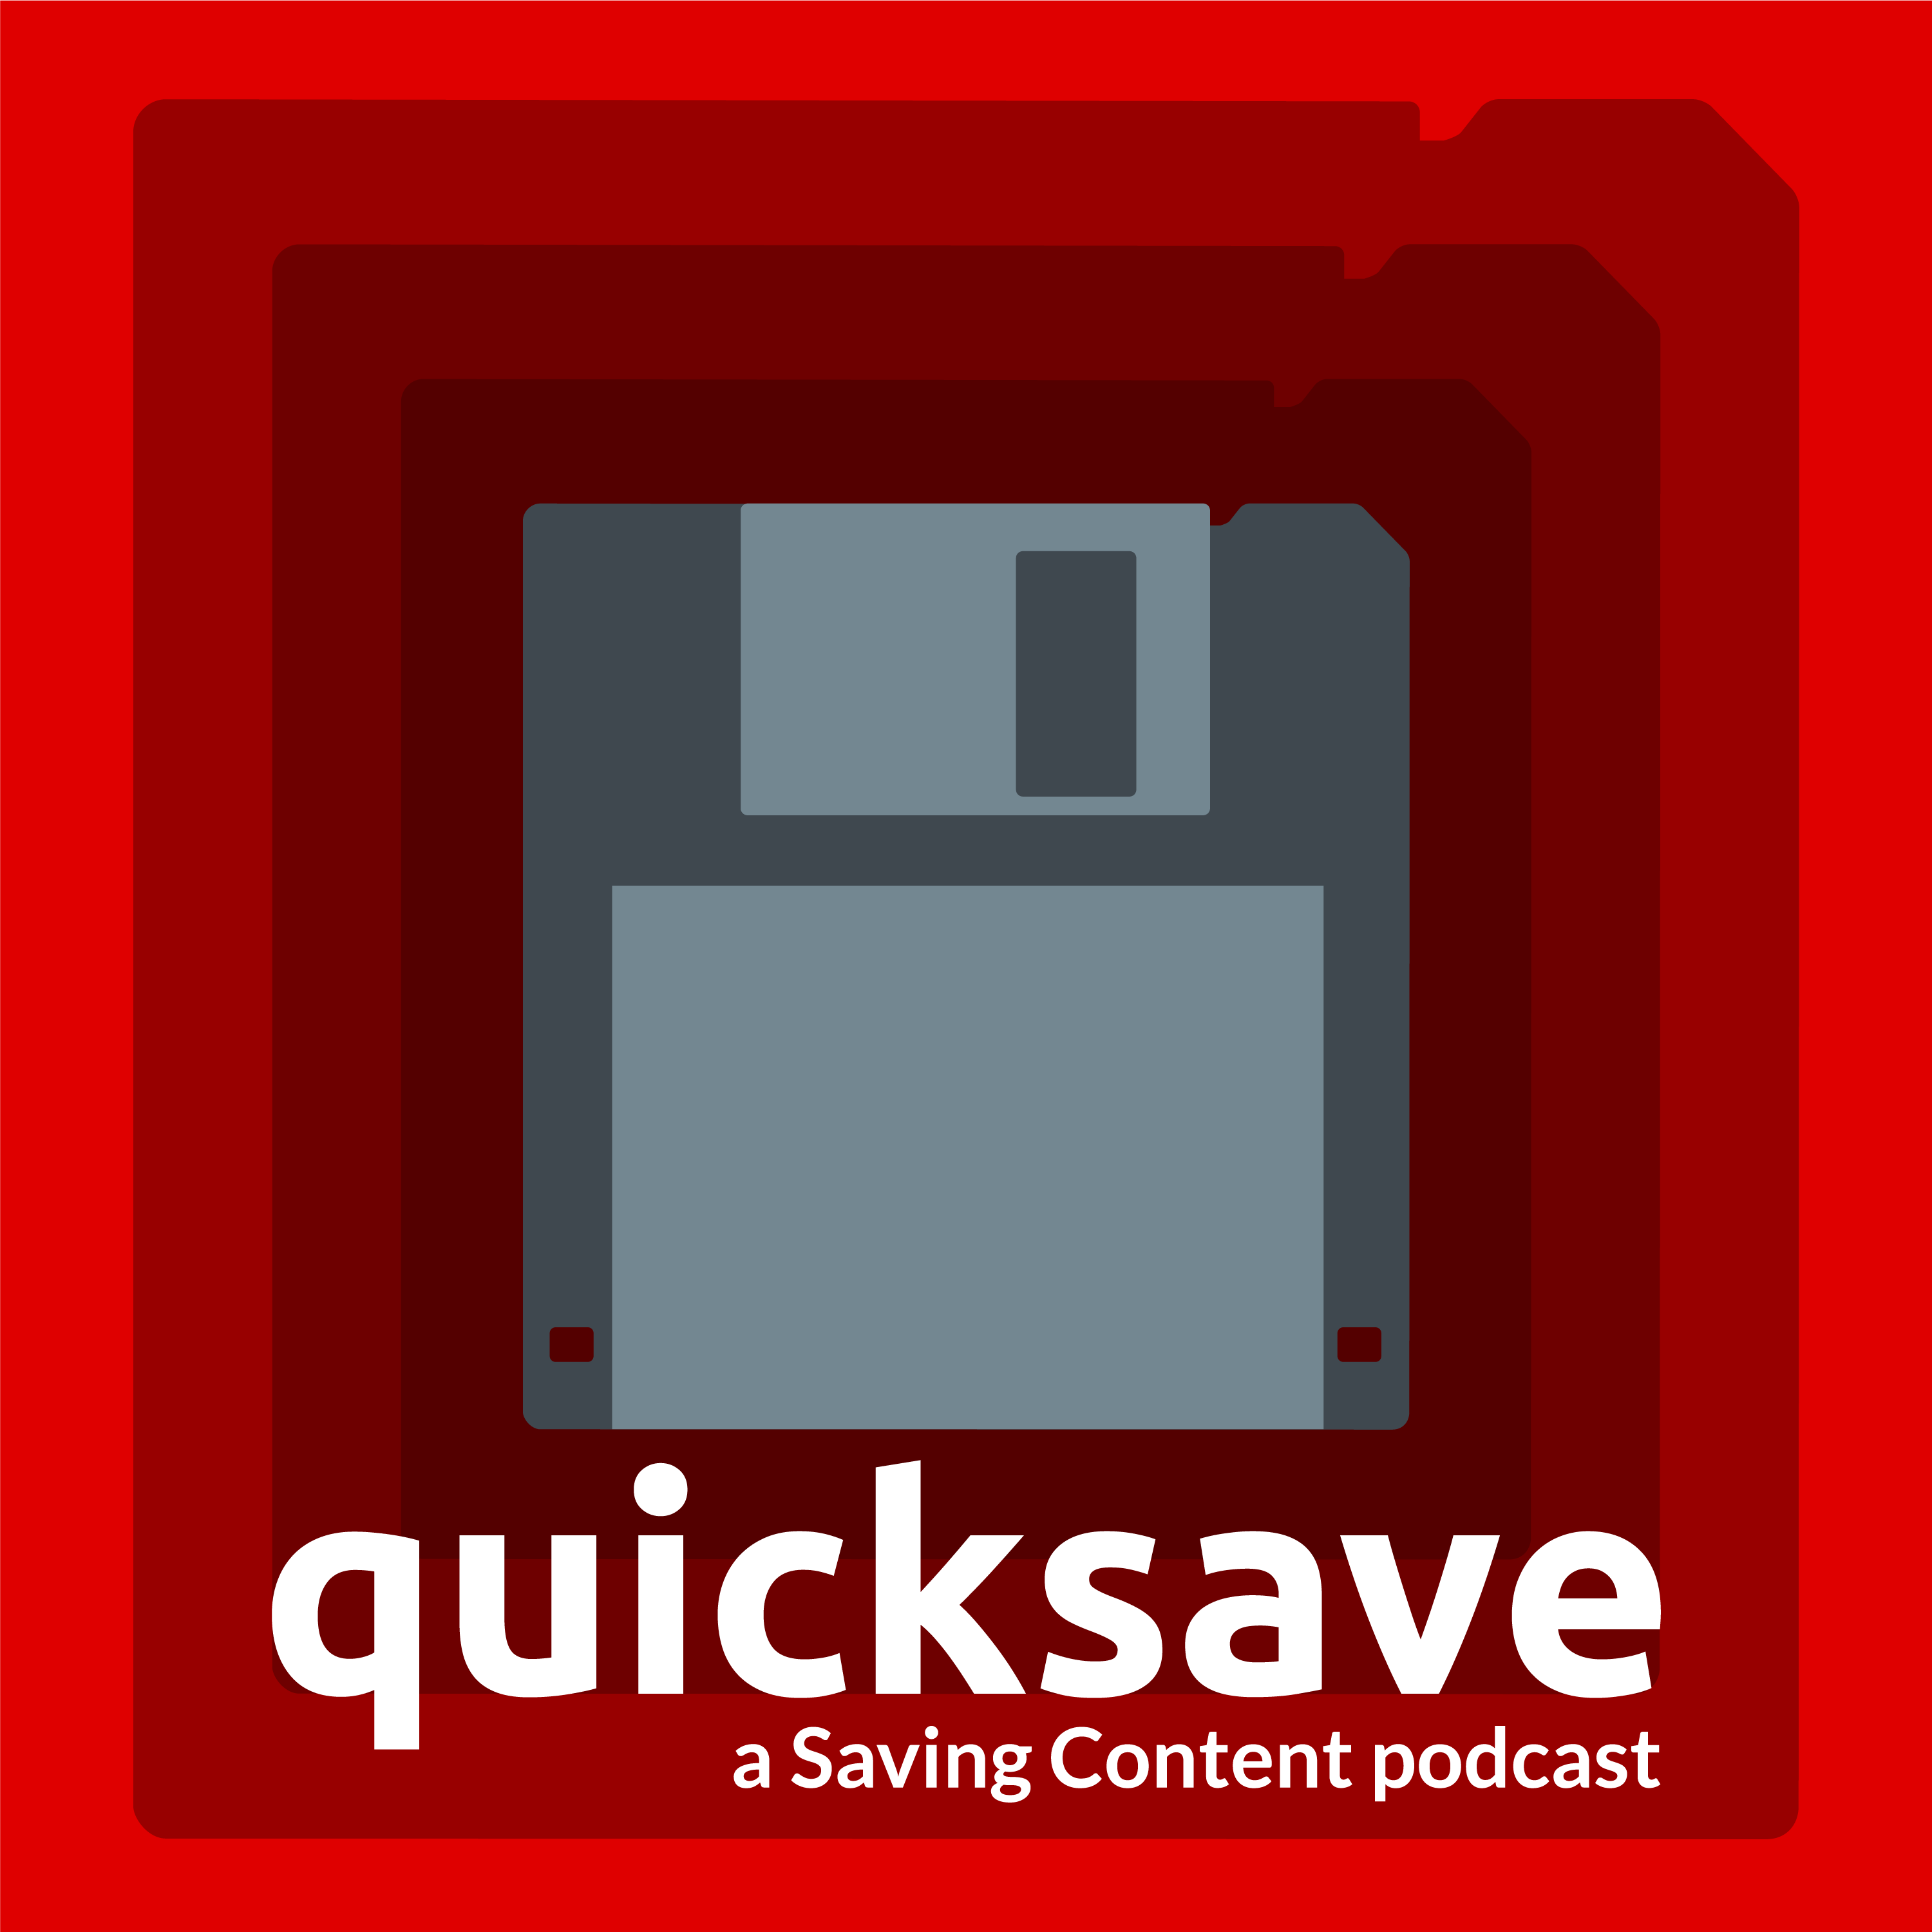 Quicksave 014: Mario Has a Way to Get Huge and Swole